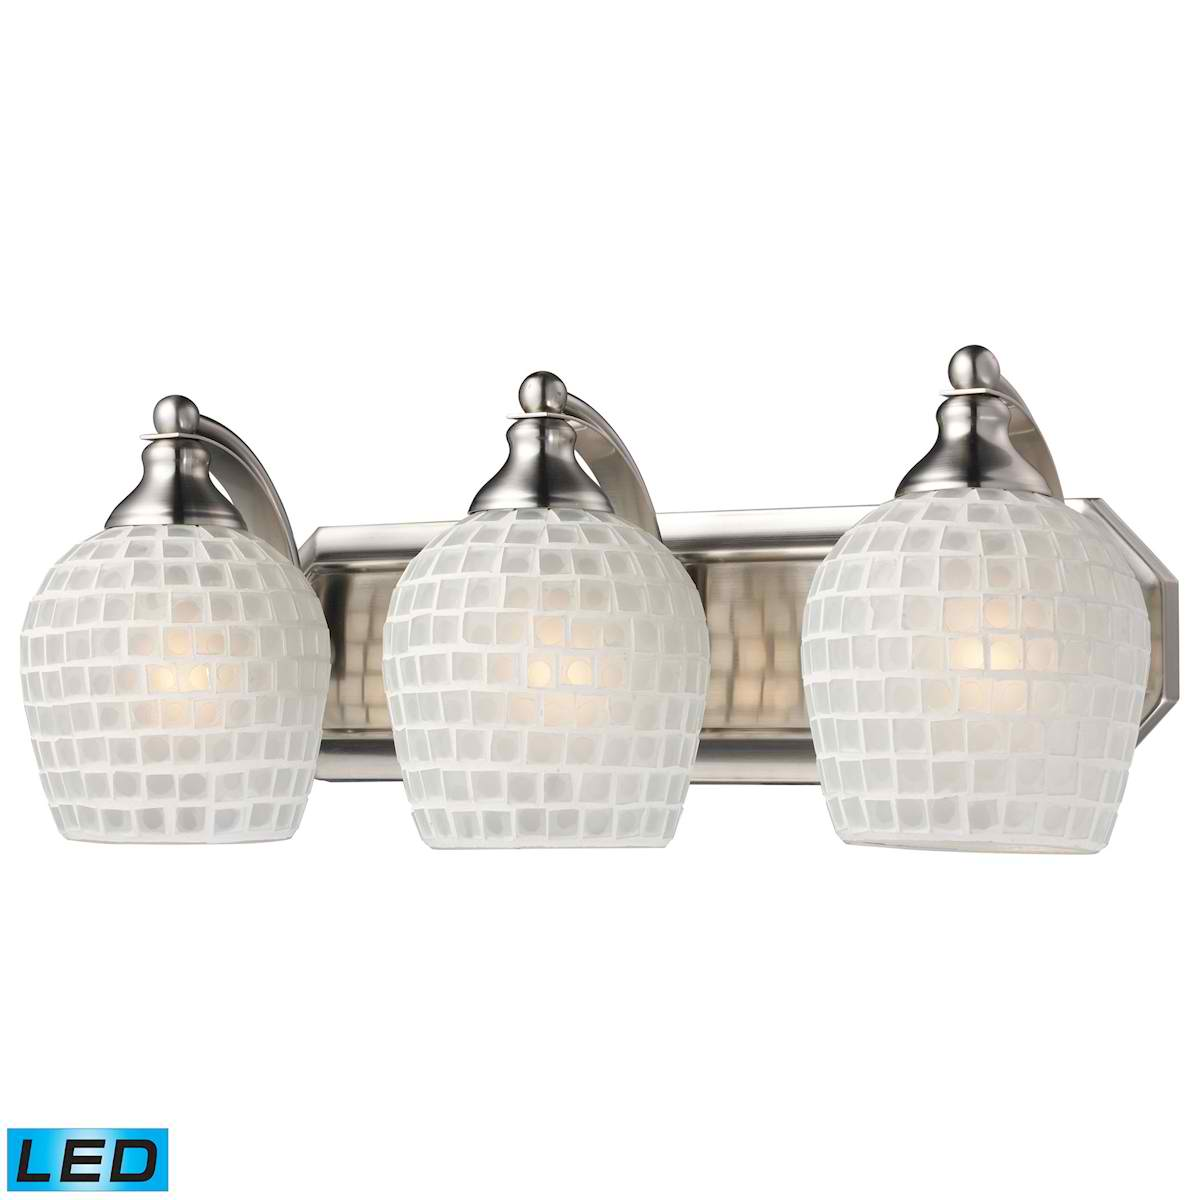 3 Light Vanity in Satin Nickel and White Mosaic Glass - LED, 800 Lumens (2400 Lumens Total) with Full Scale